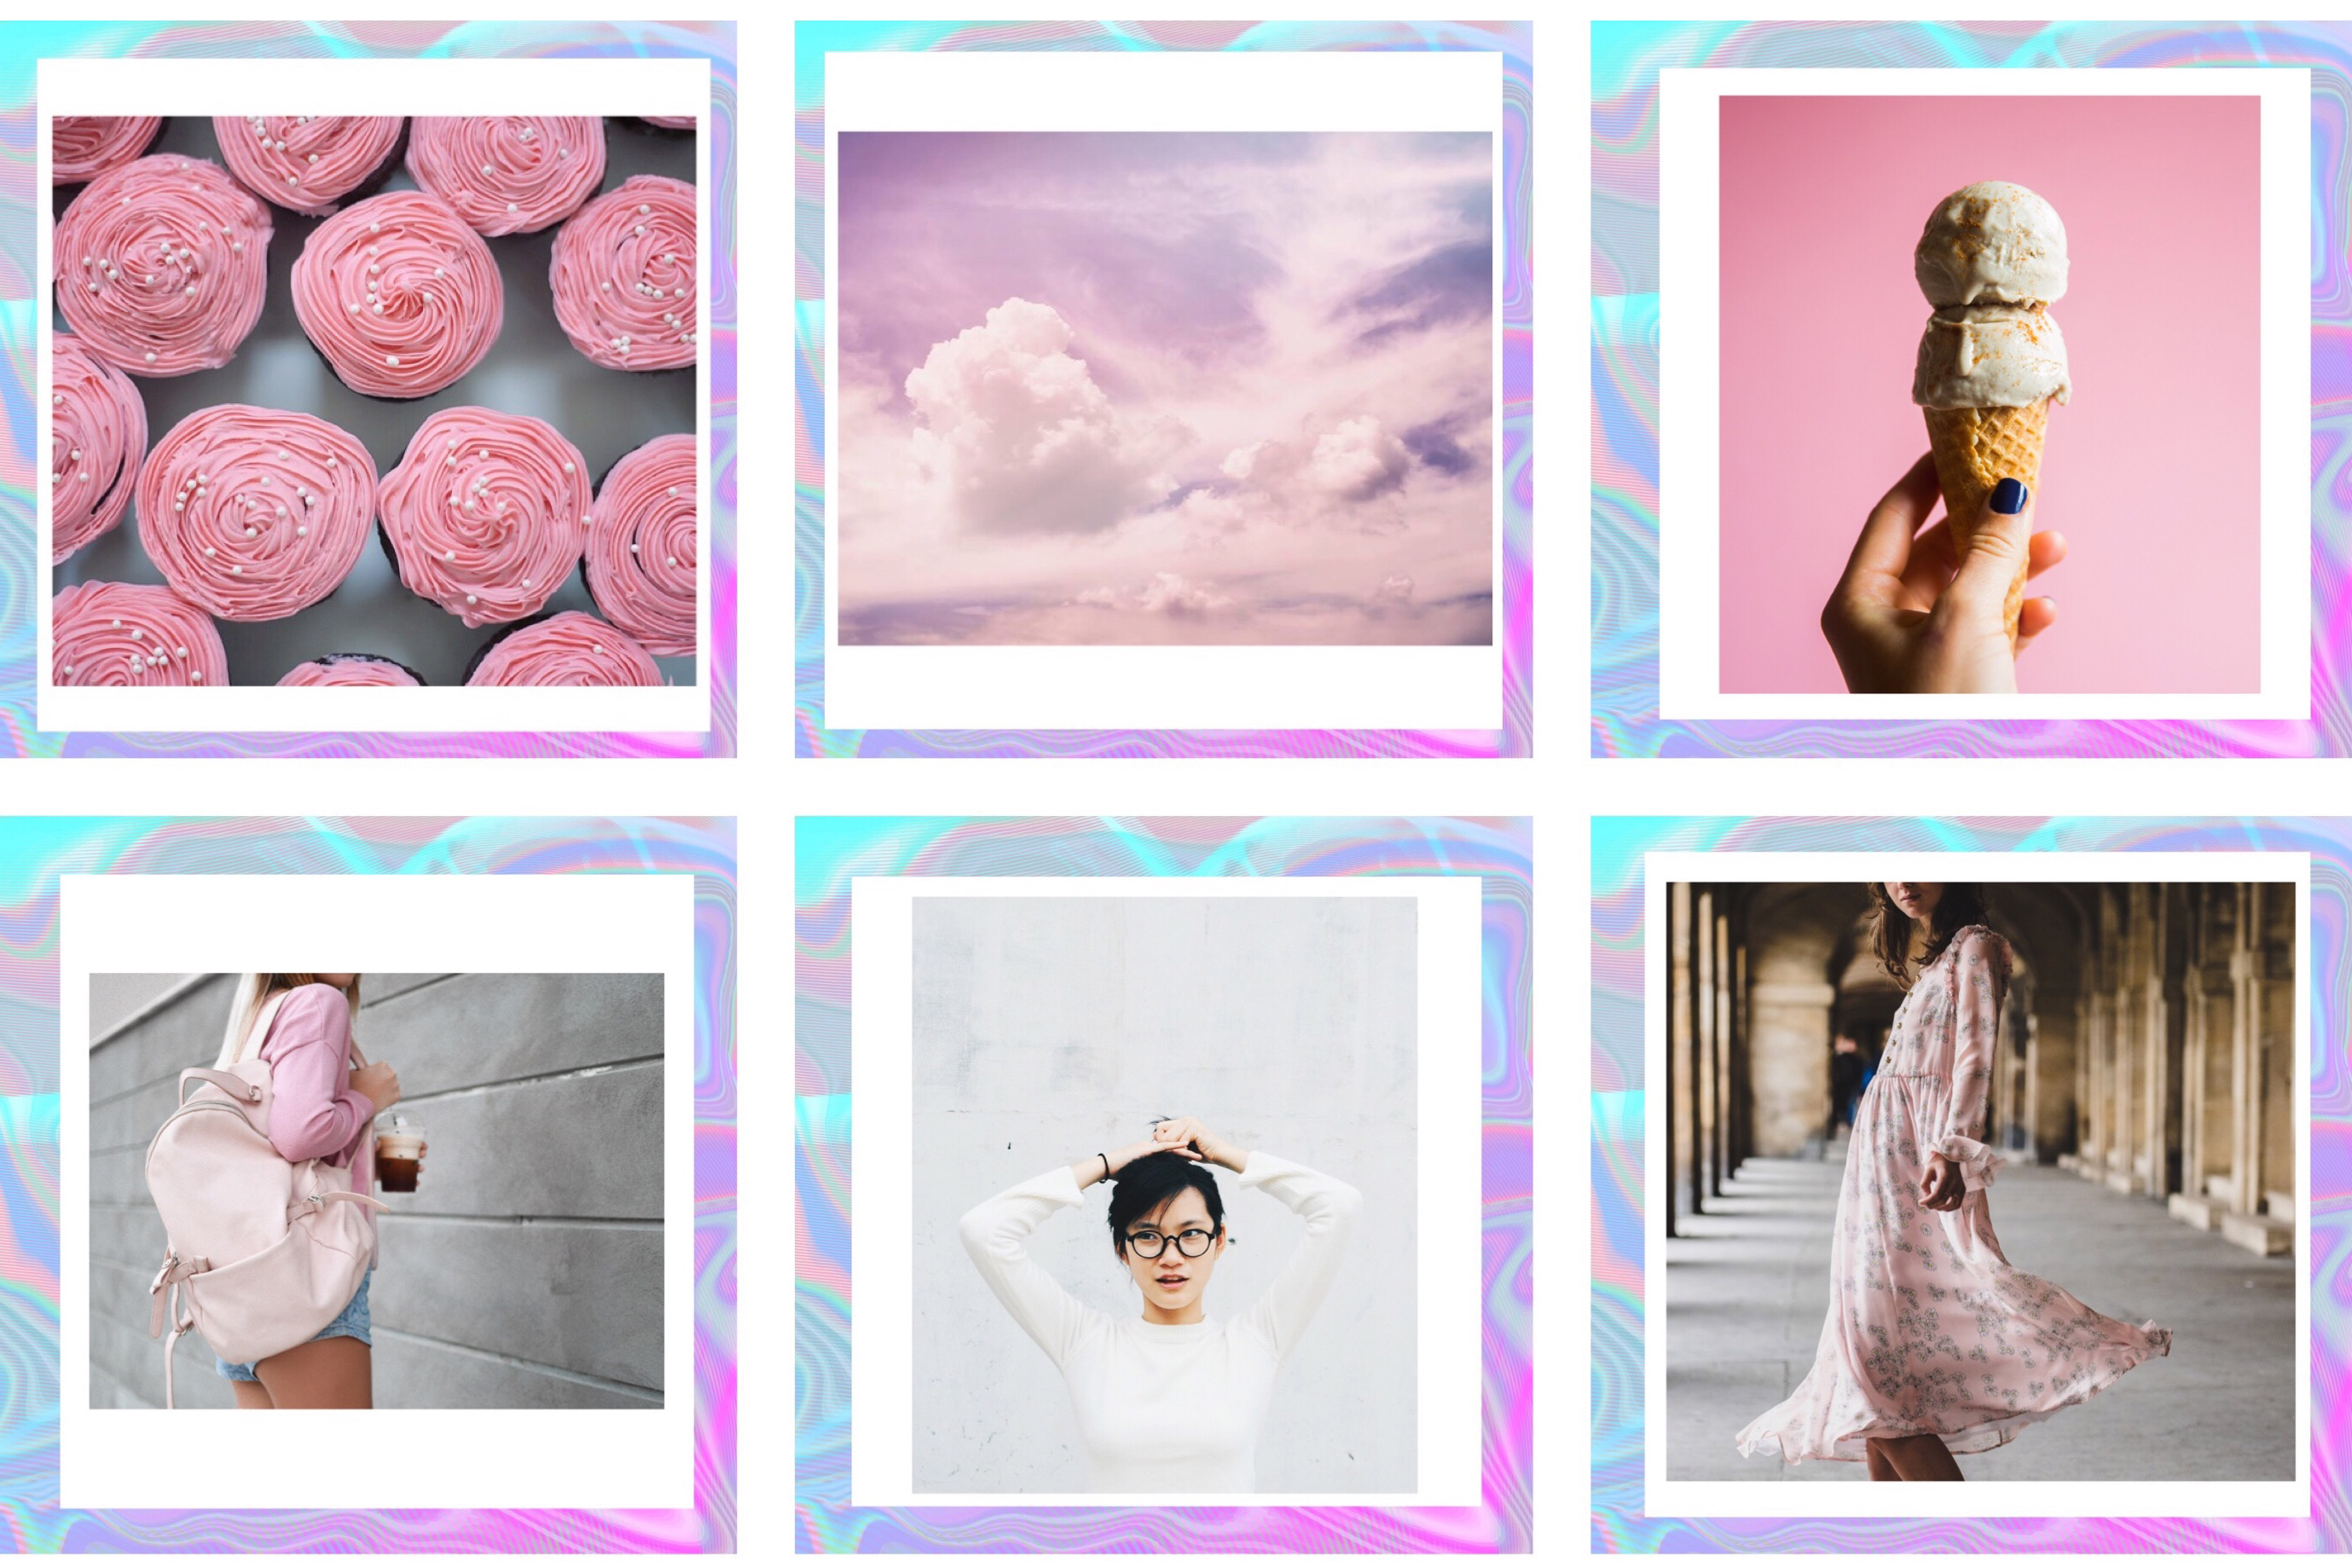 How To Make A Mood Board With Picsart Collage Maker